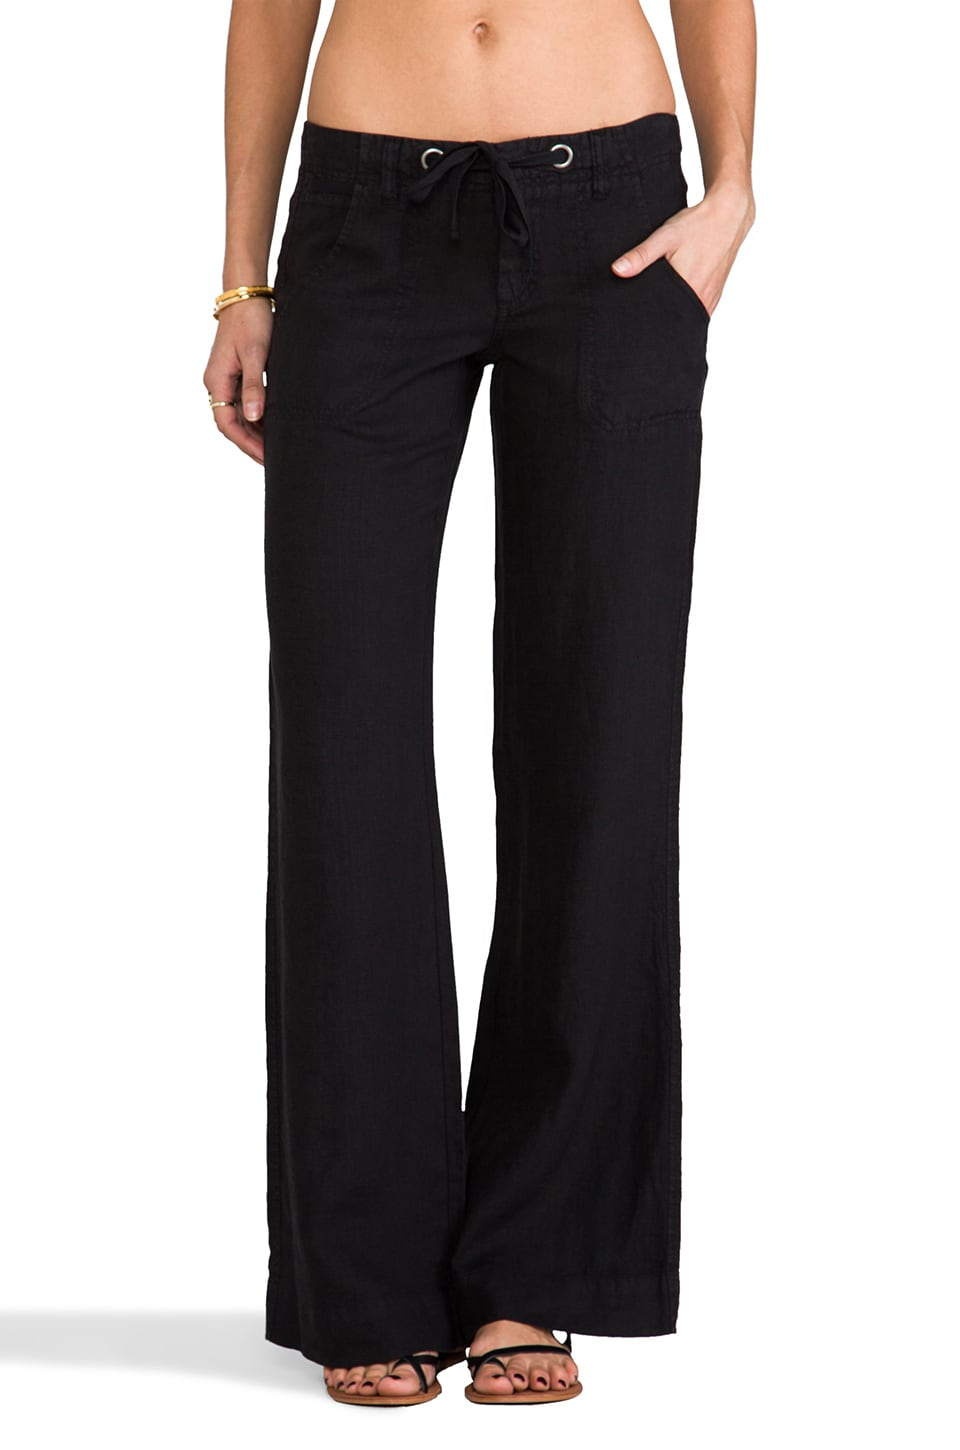 Joie Irreplaceable B Linen Pant in Caviar